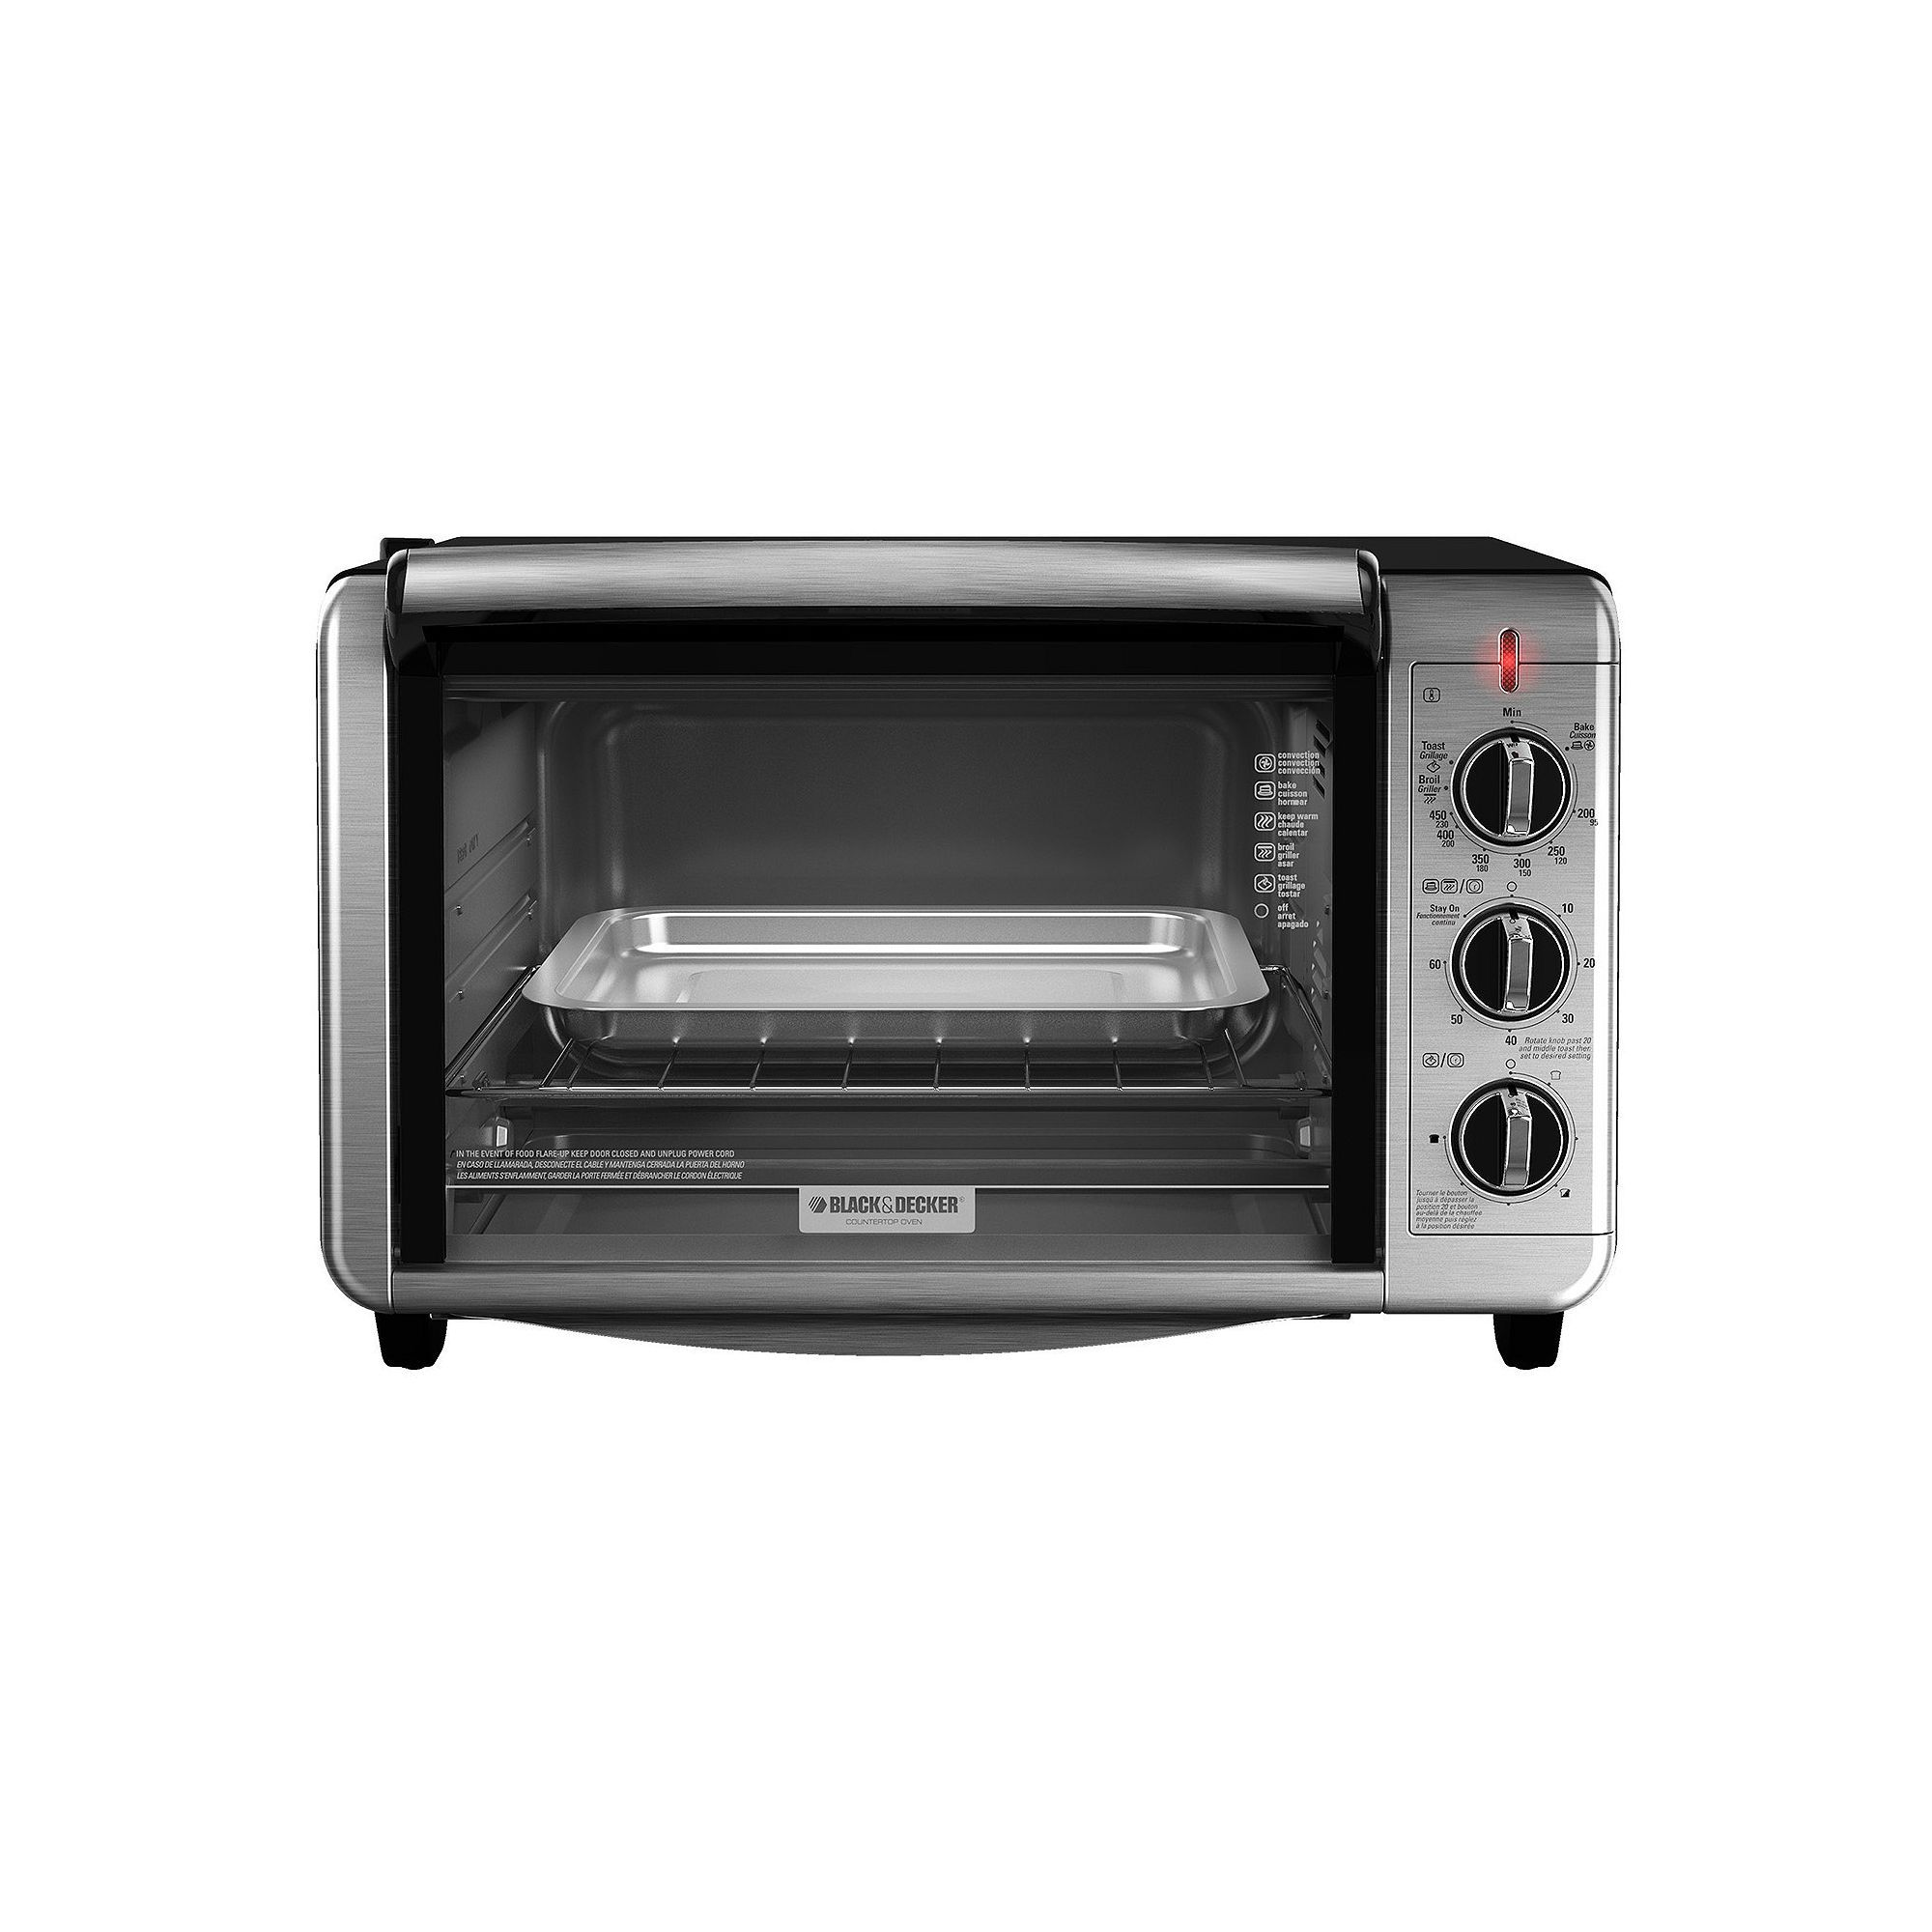 Black Decker Dining In Countertop Convection Oven Multicolor